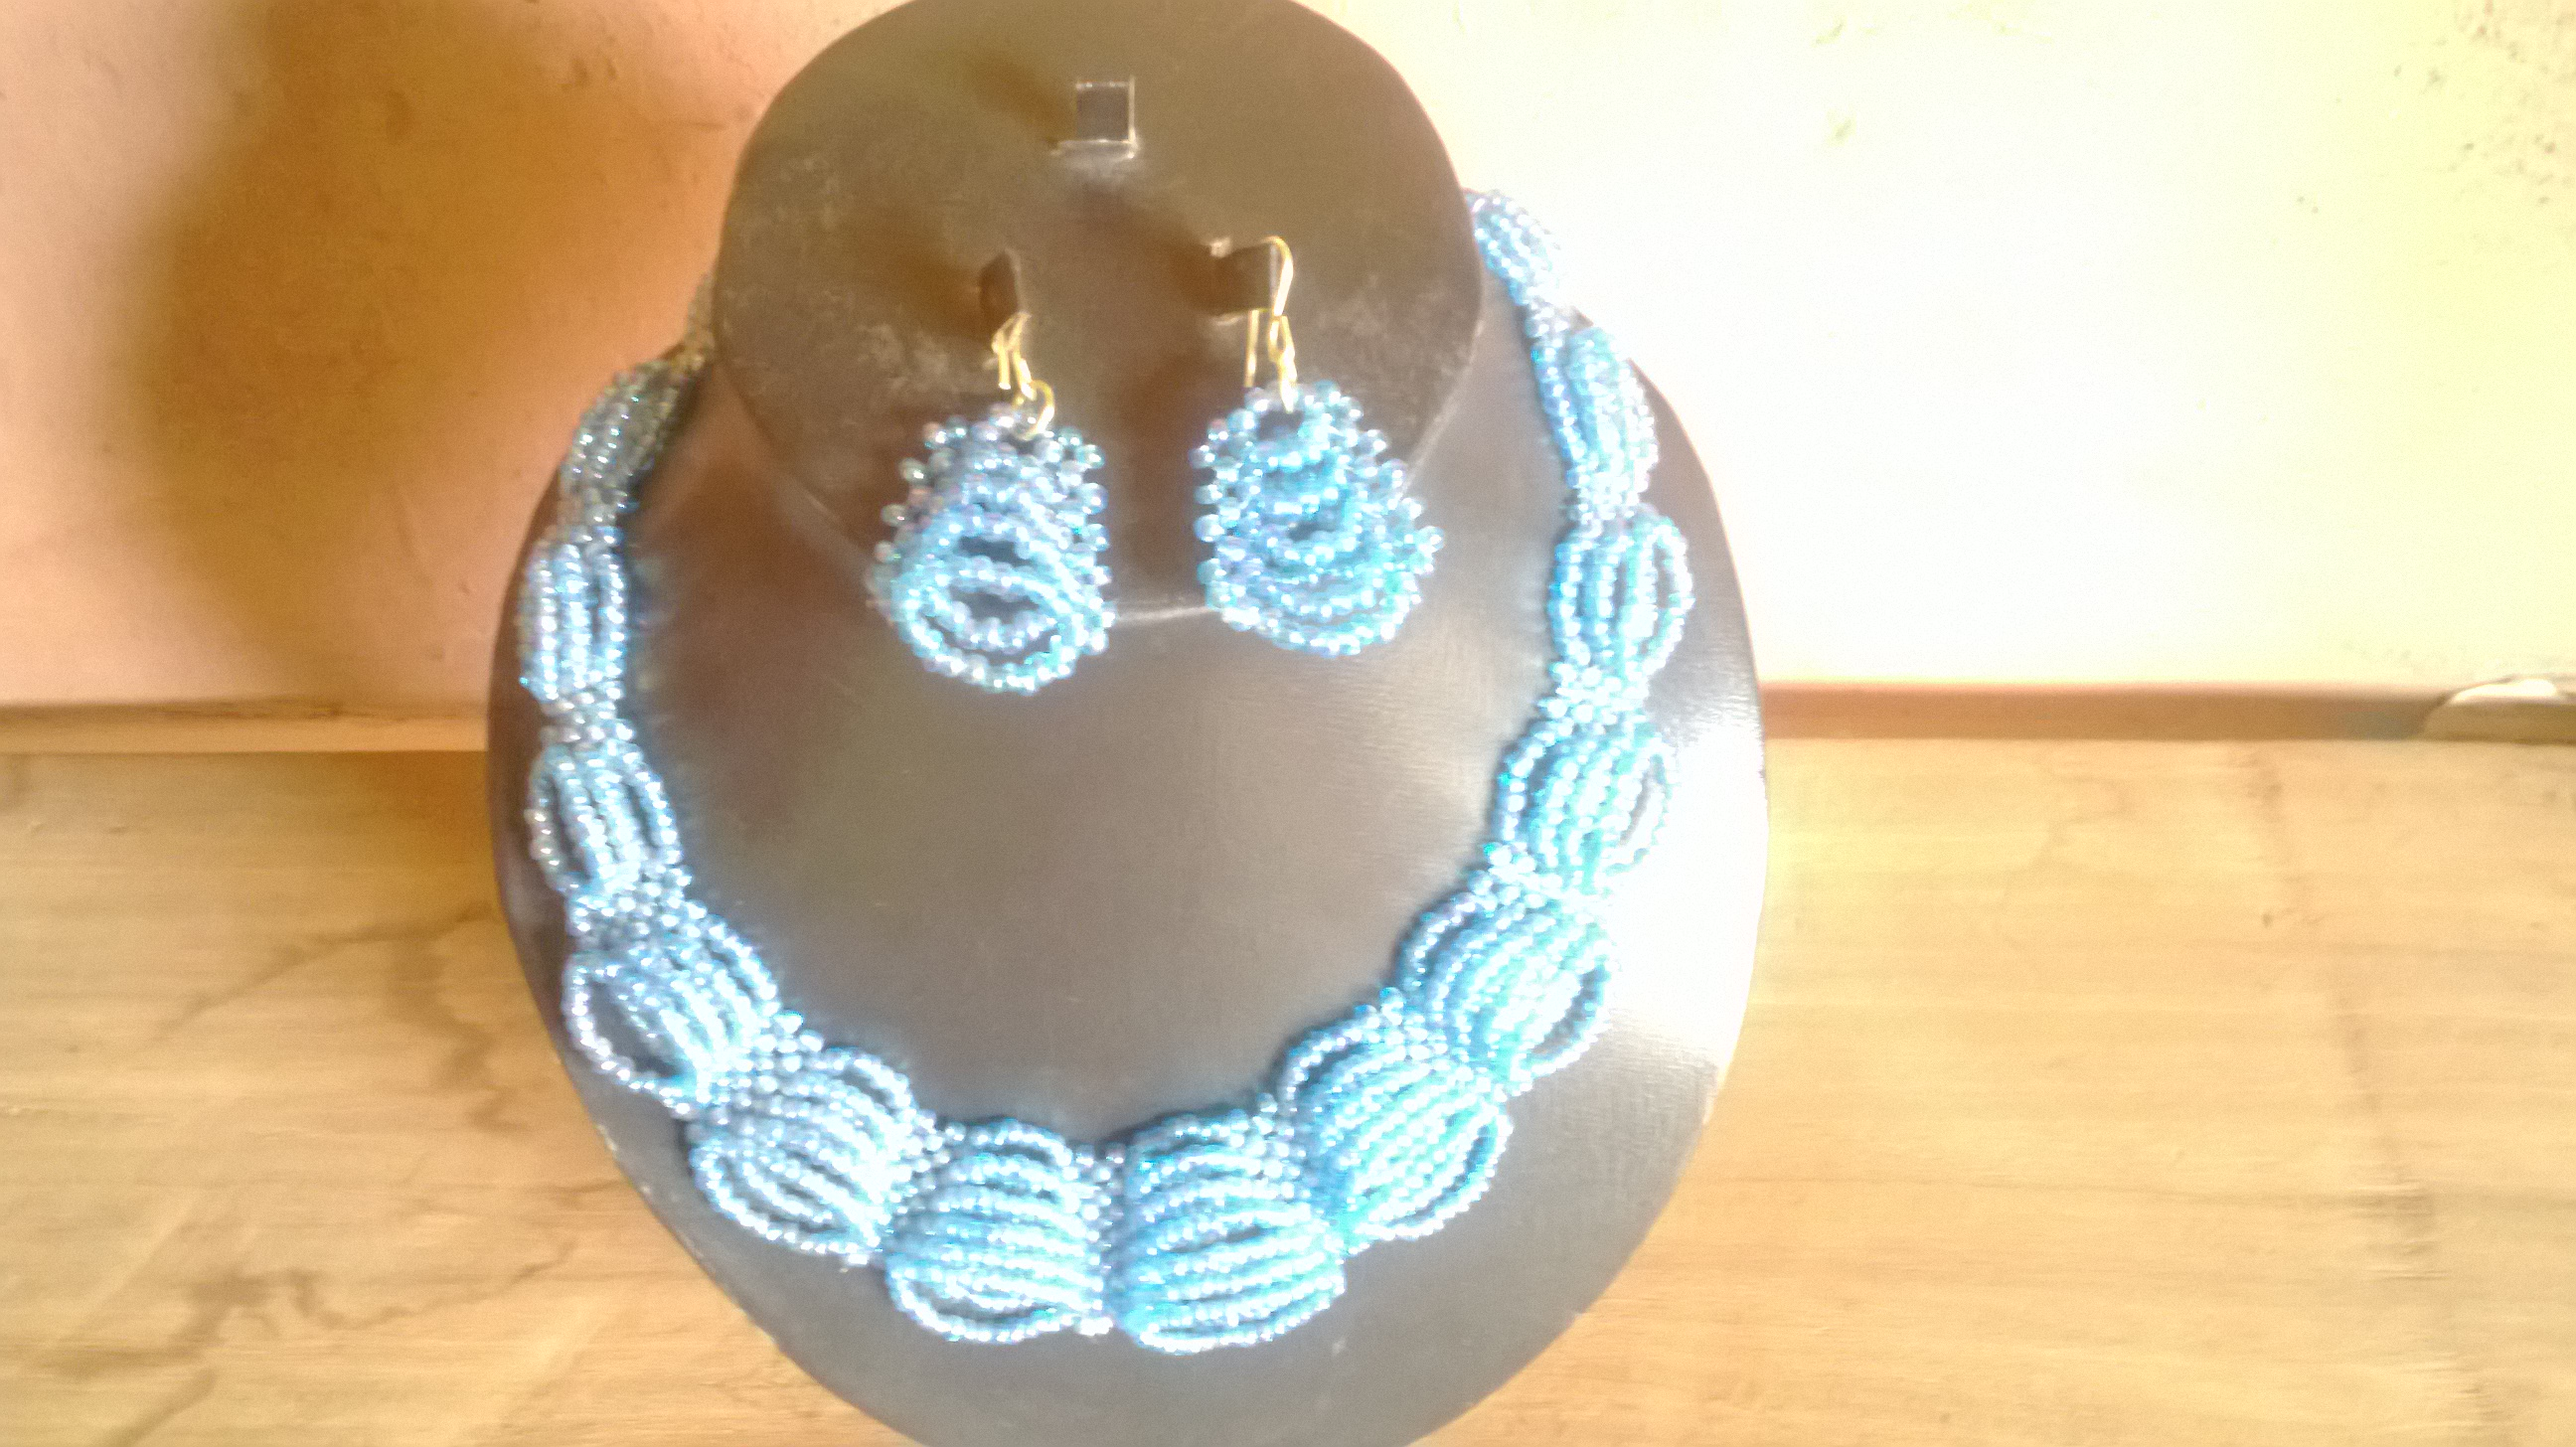 handmade bush sand bead necklace and earrings for $70 - ListingDock